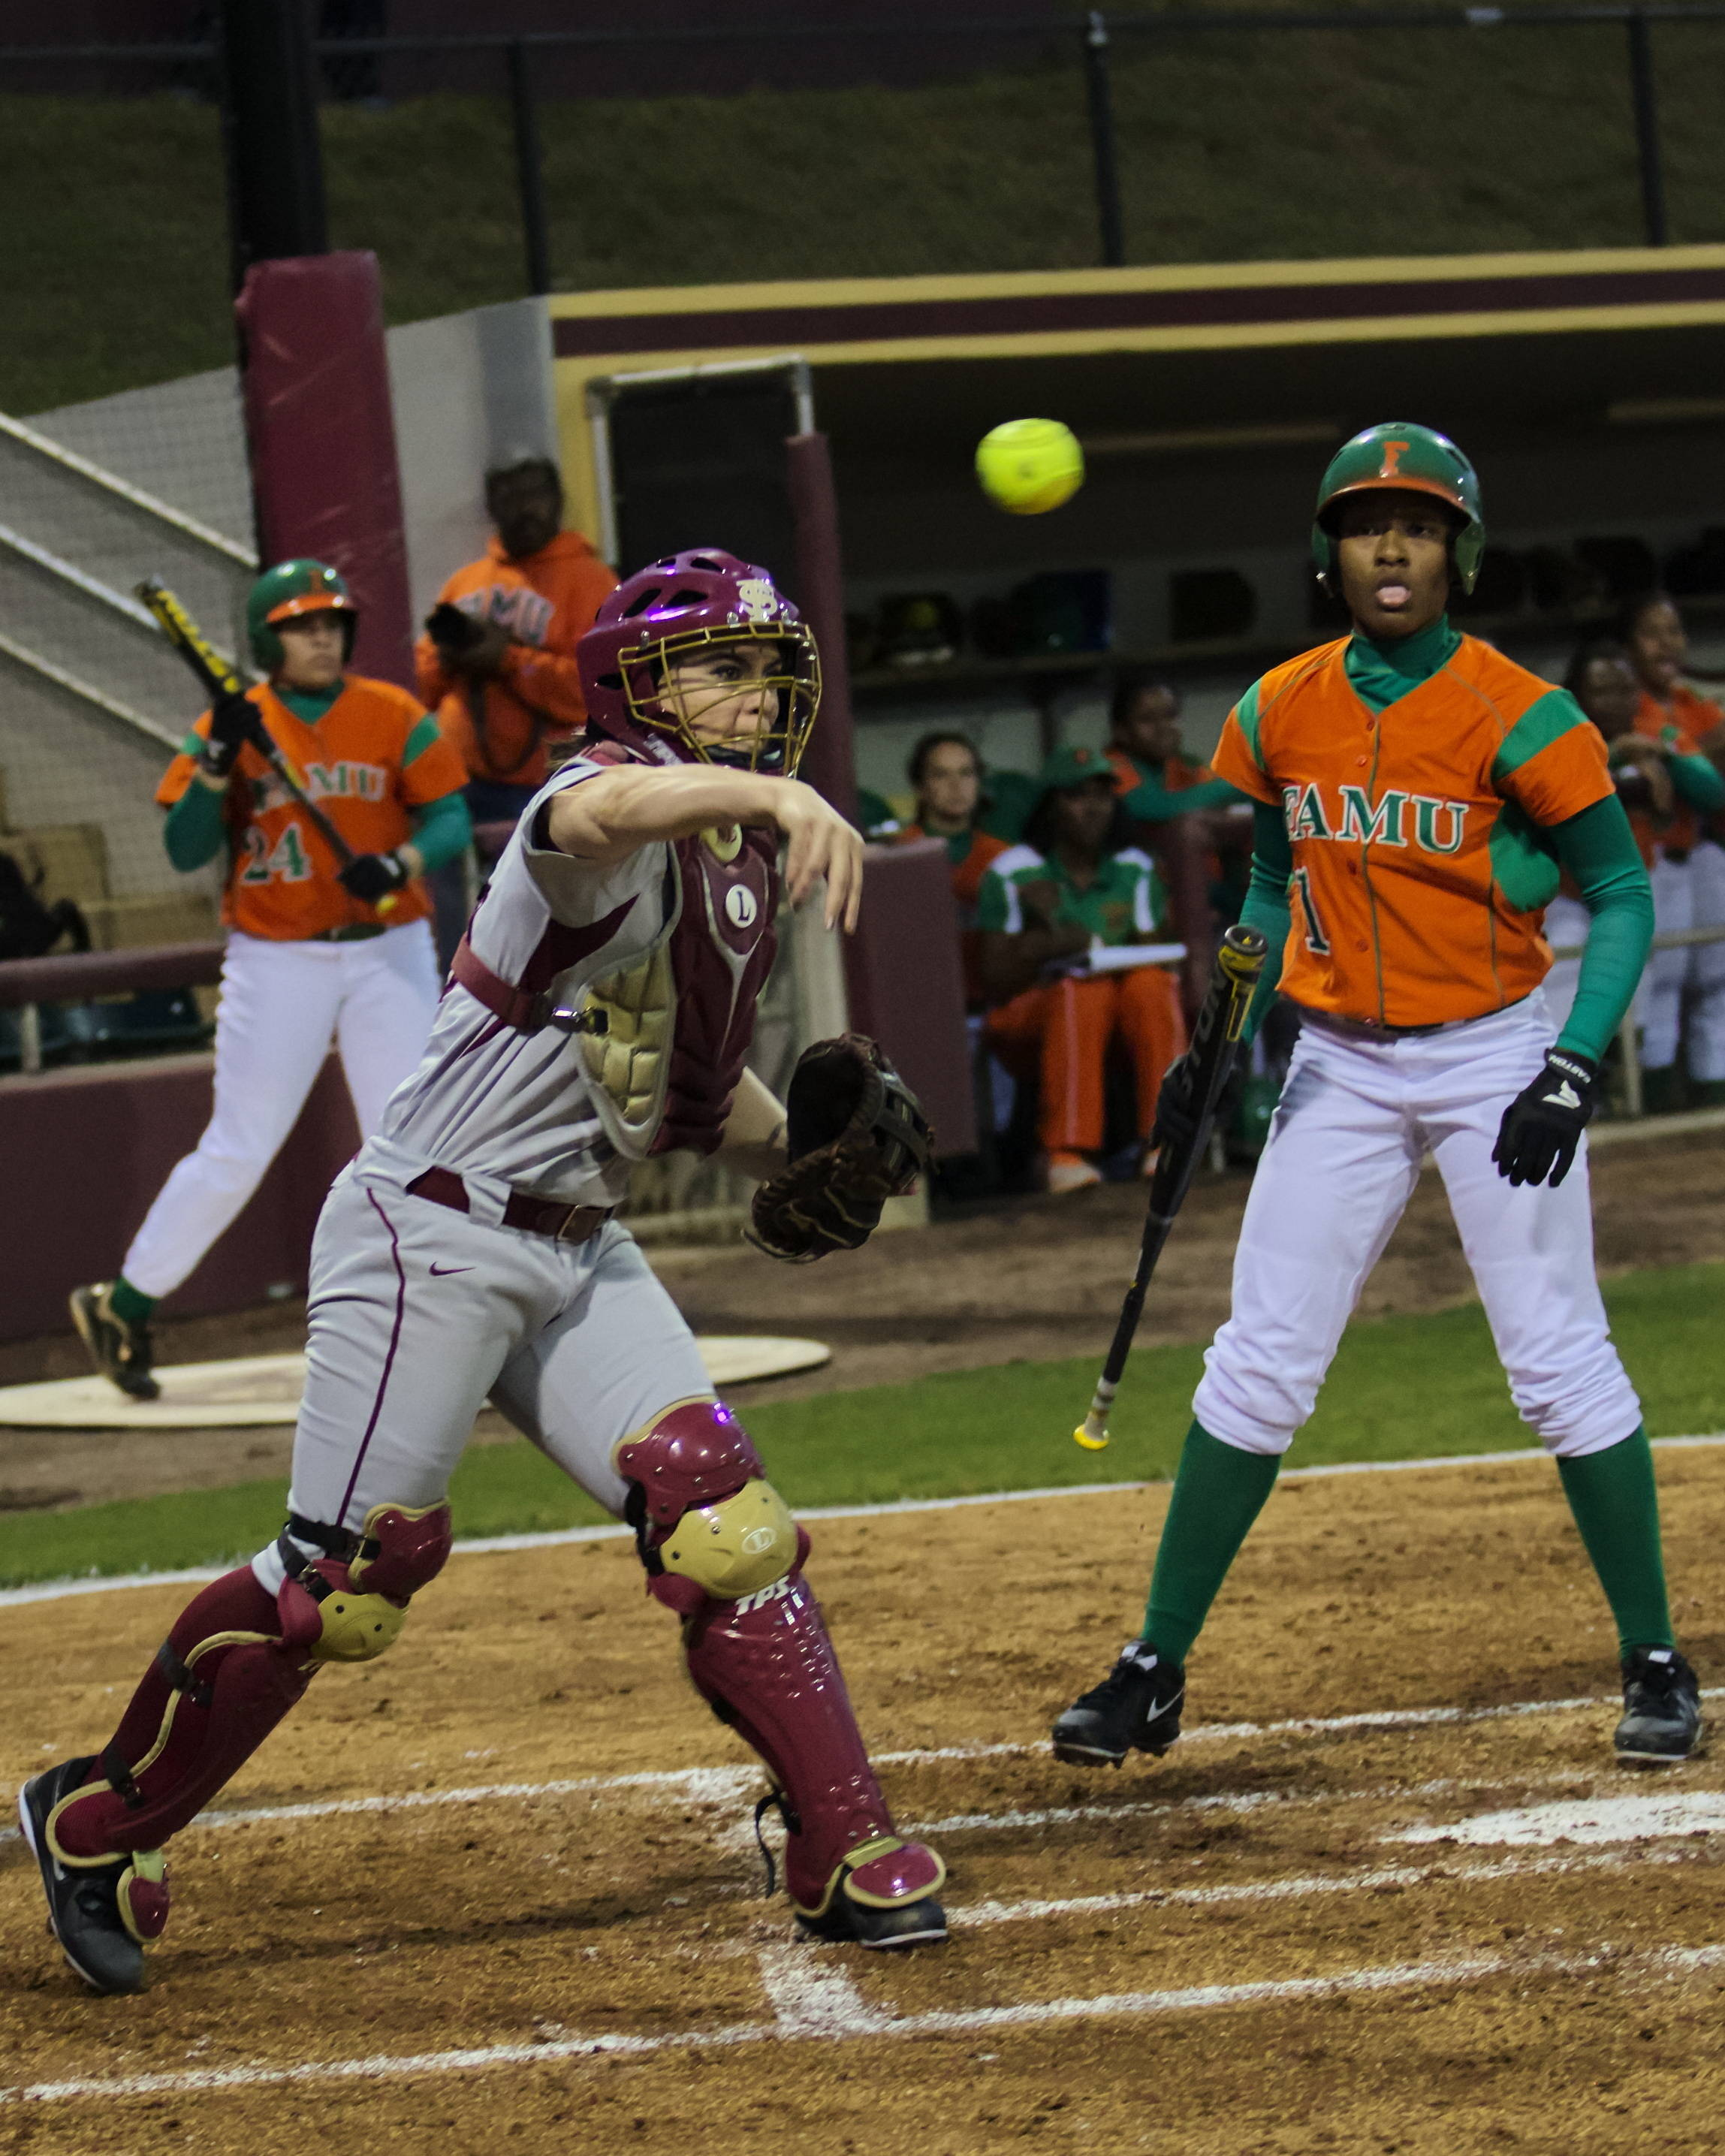 Celeste Gomez (00), FSU vs FAMU, 02/08/13. (Photo by Steve Musco)